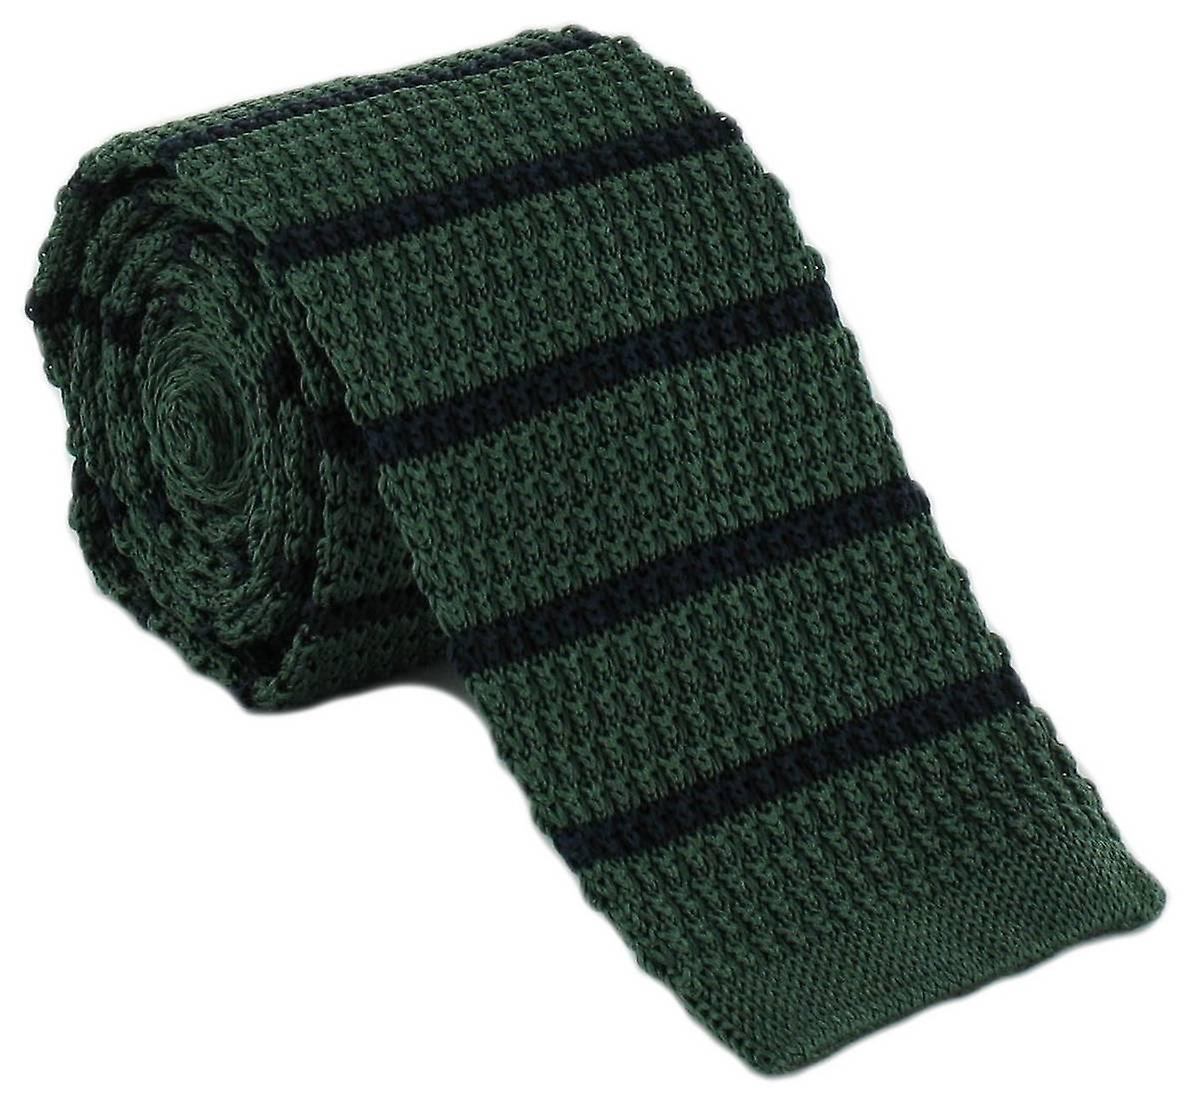 Michelsons of London Silk Knitted Striped Skinny Tie - Green/Navy